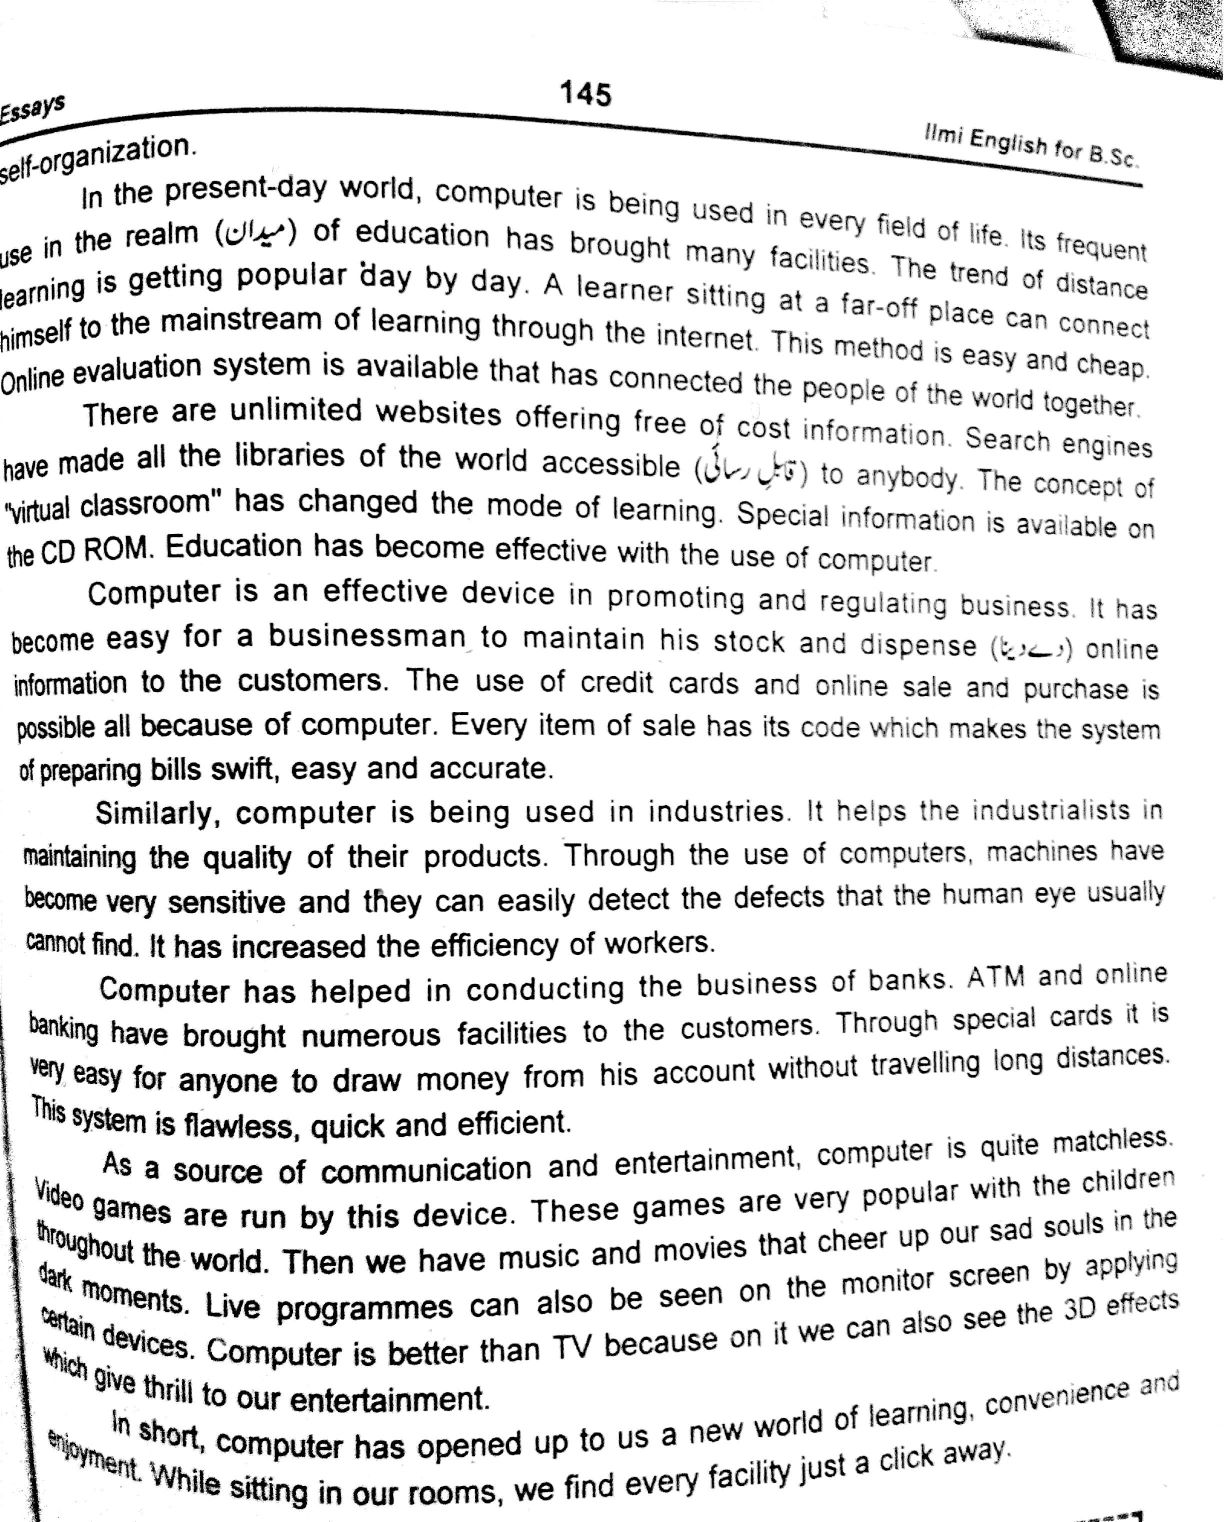 009 Computer2b252822529 Essay Of Advantages And Disadvantages Computer Archaicawful On In Urdu Language Games Full